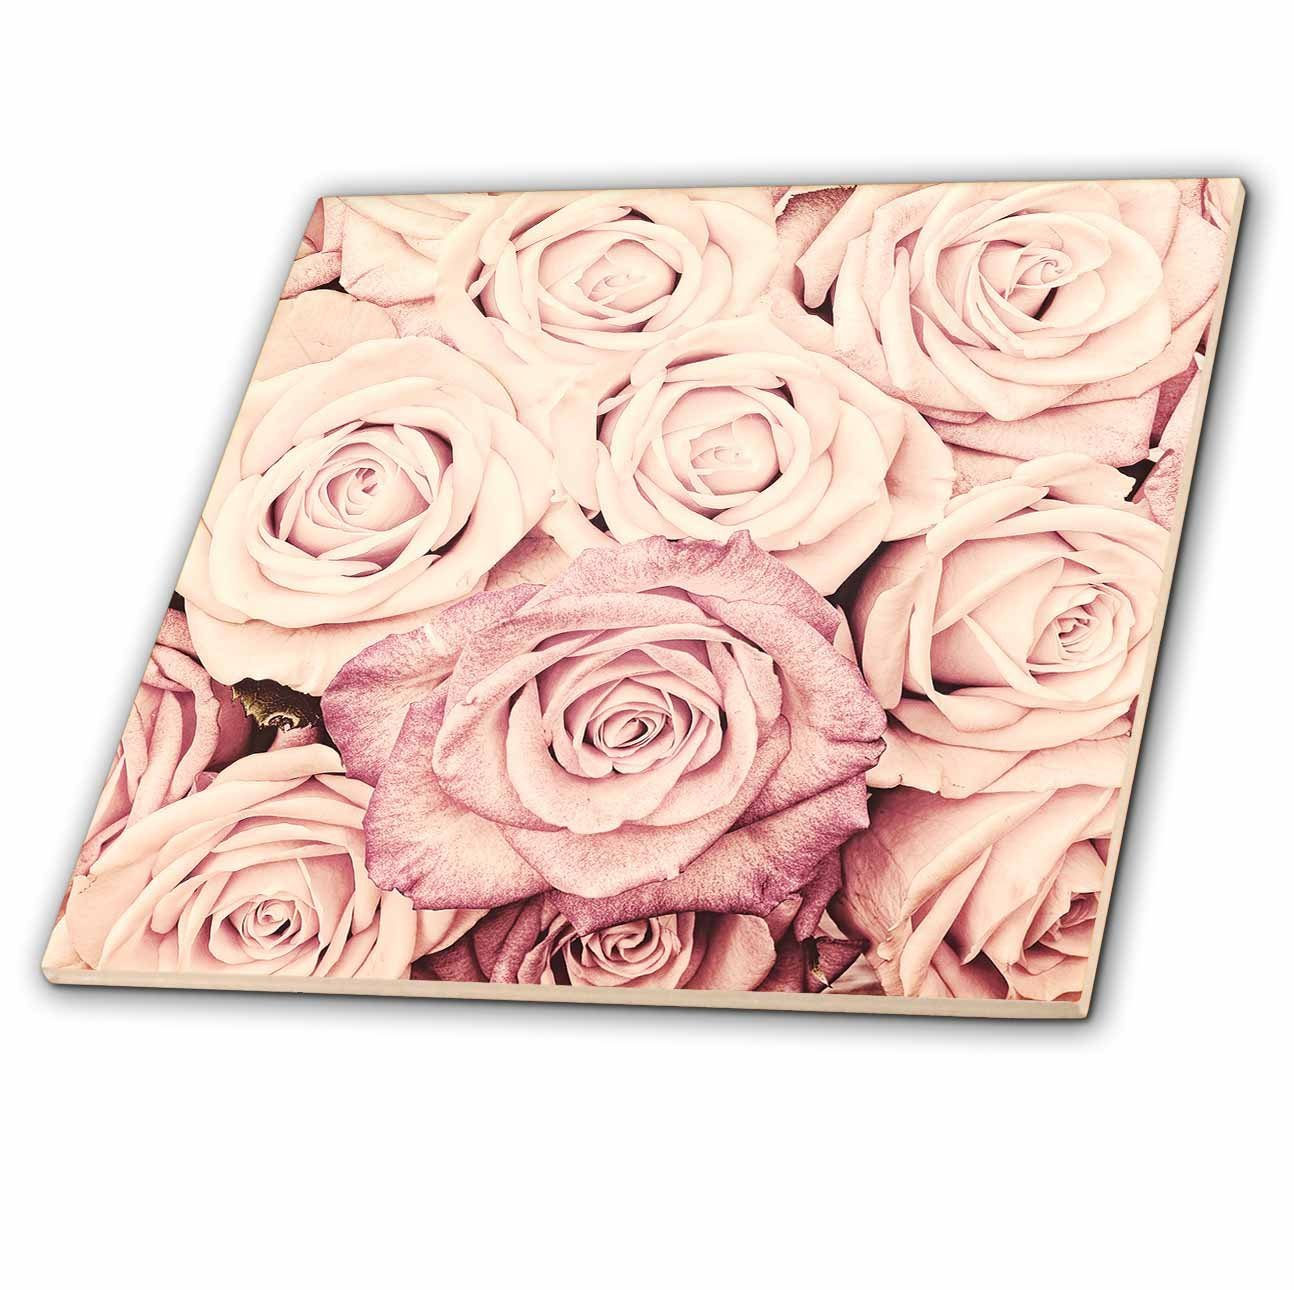 Cheap pink bunch of flowers find pink bunch of flowers deals on mylittlerachellife 3drose uta naumann photography flowers bunch of pink roses 6 inch ceramic tile dailygadgetfo Choice Image